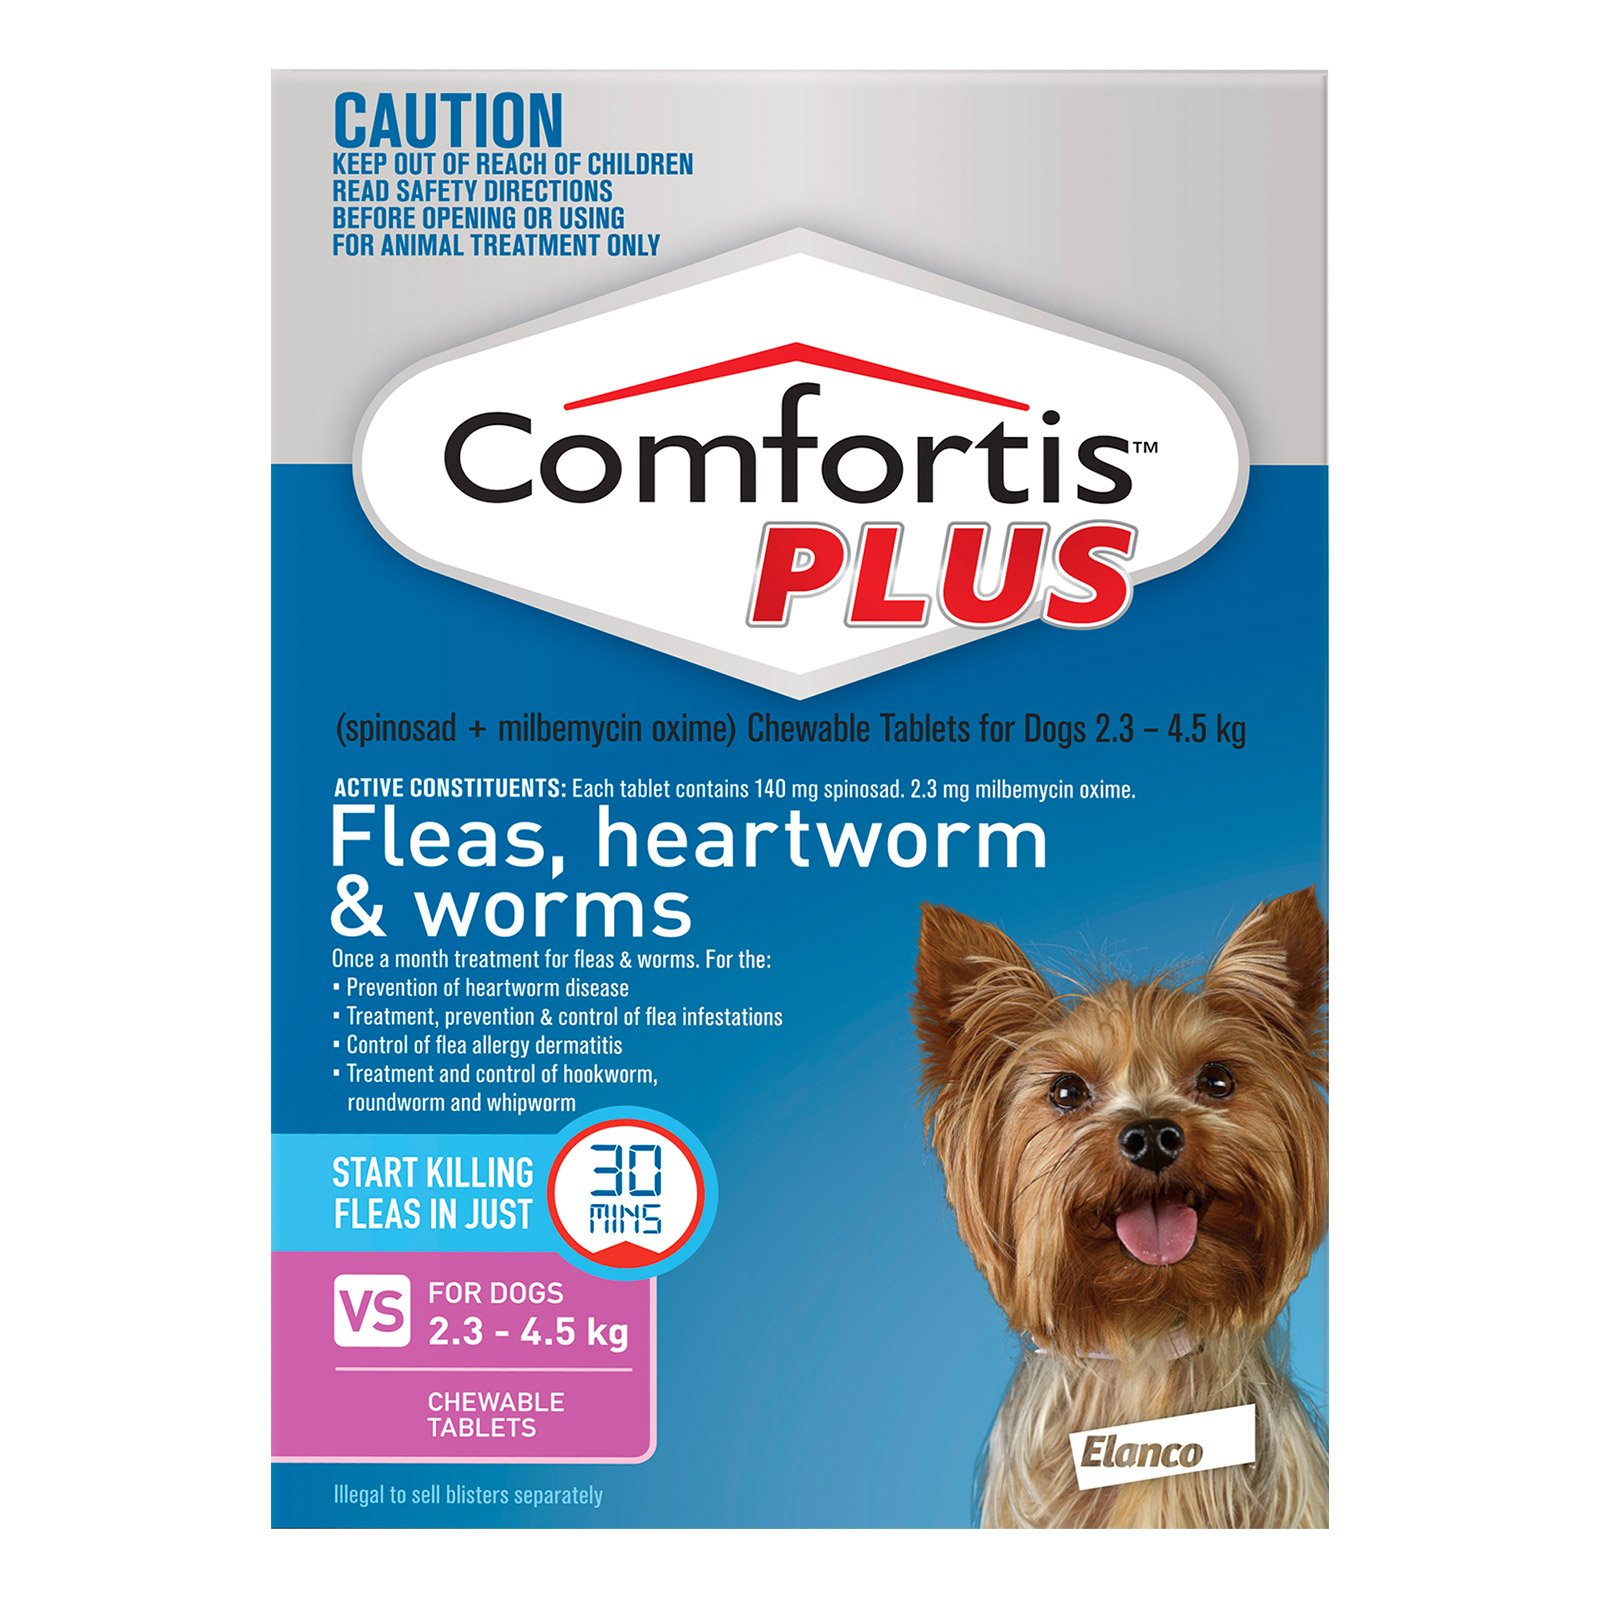 Comfortis Plus (Trifexis) For Very Small Dogs 2.3-4.5 Kg (5 - 10lbs) Pink